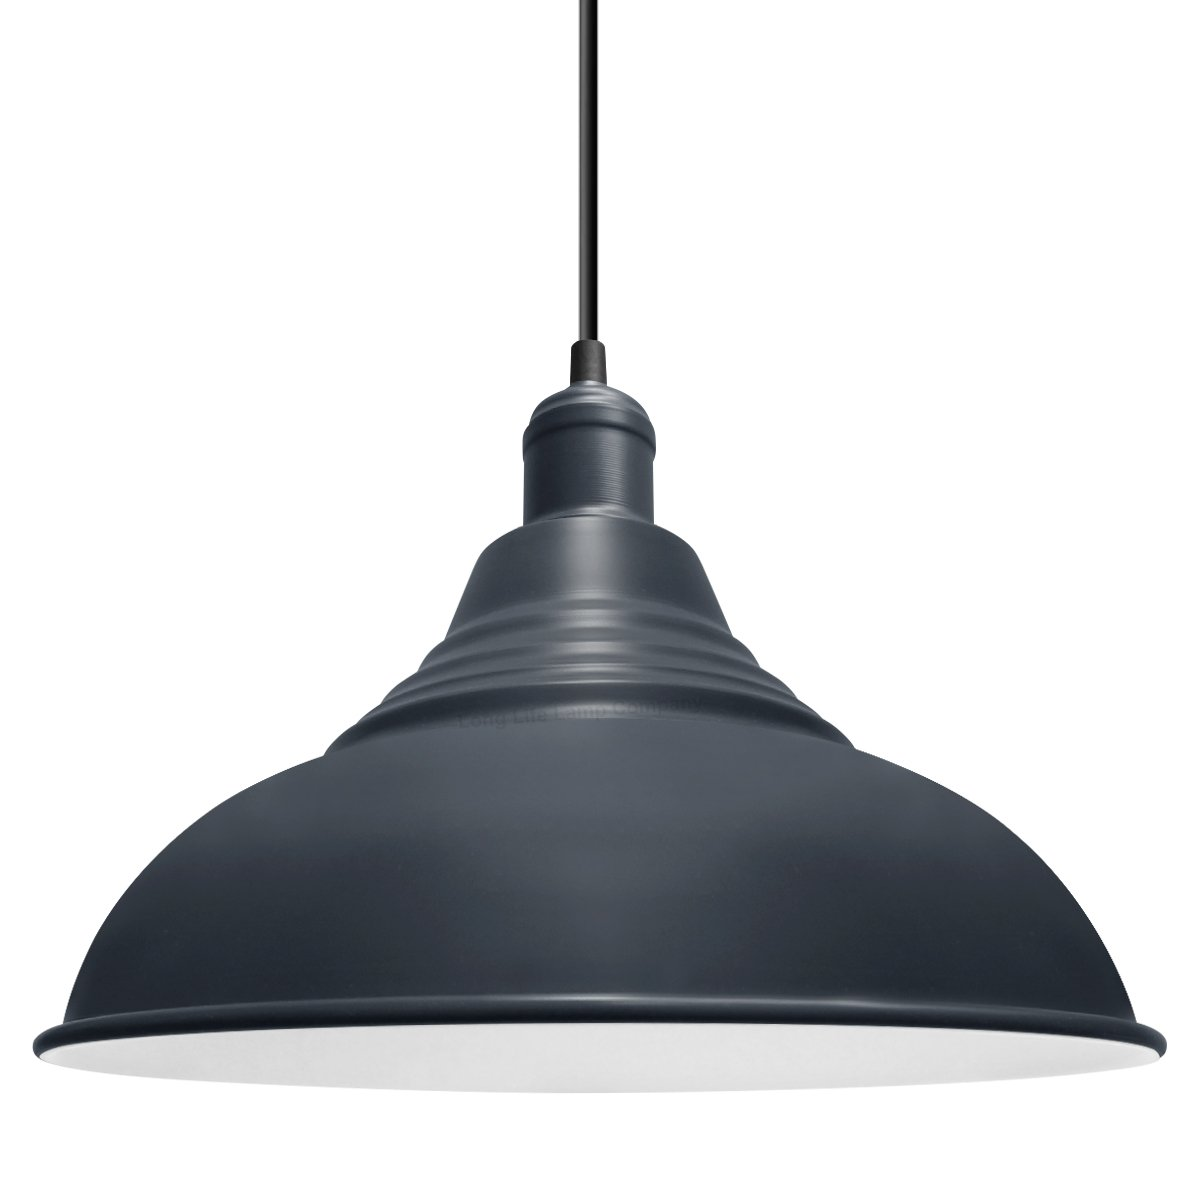 Modern Industrial Style Metal Ceiling Light Pendant Shade